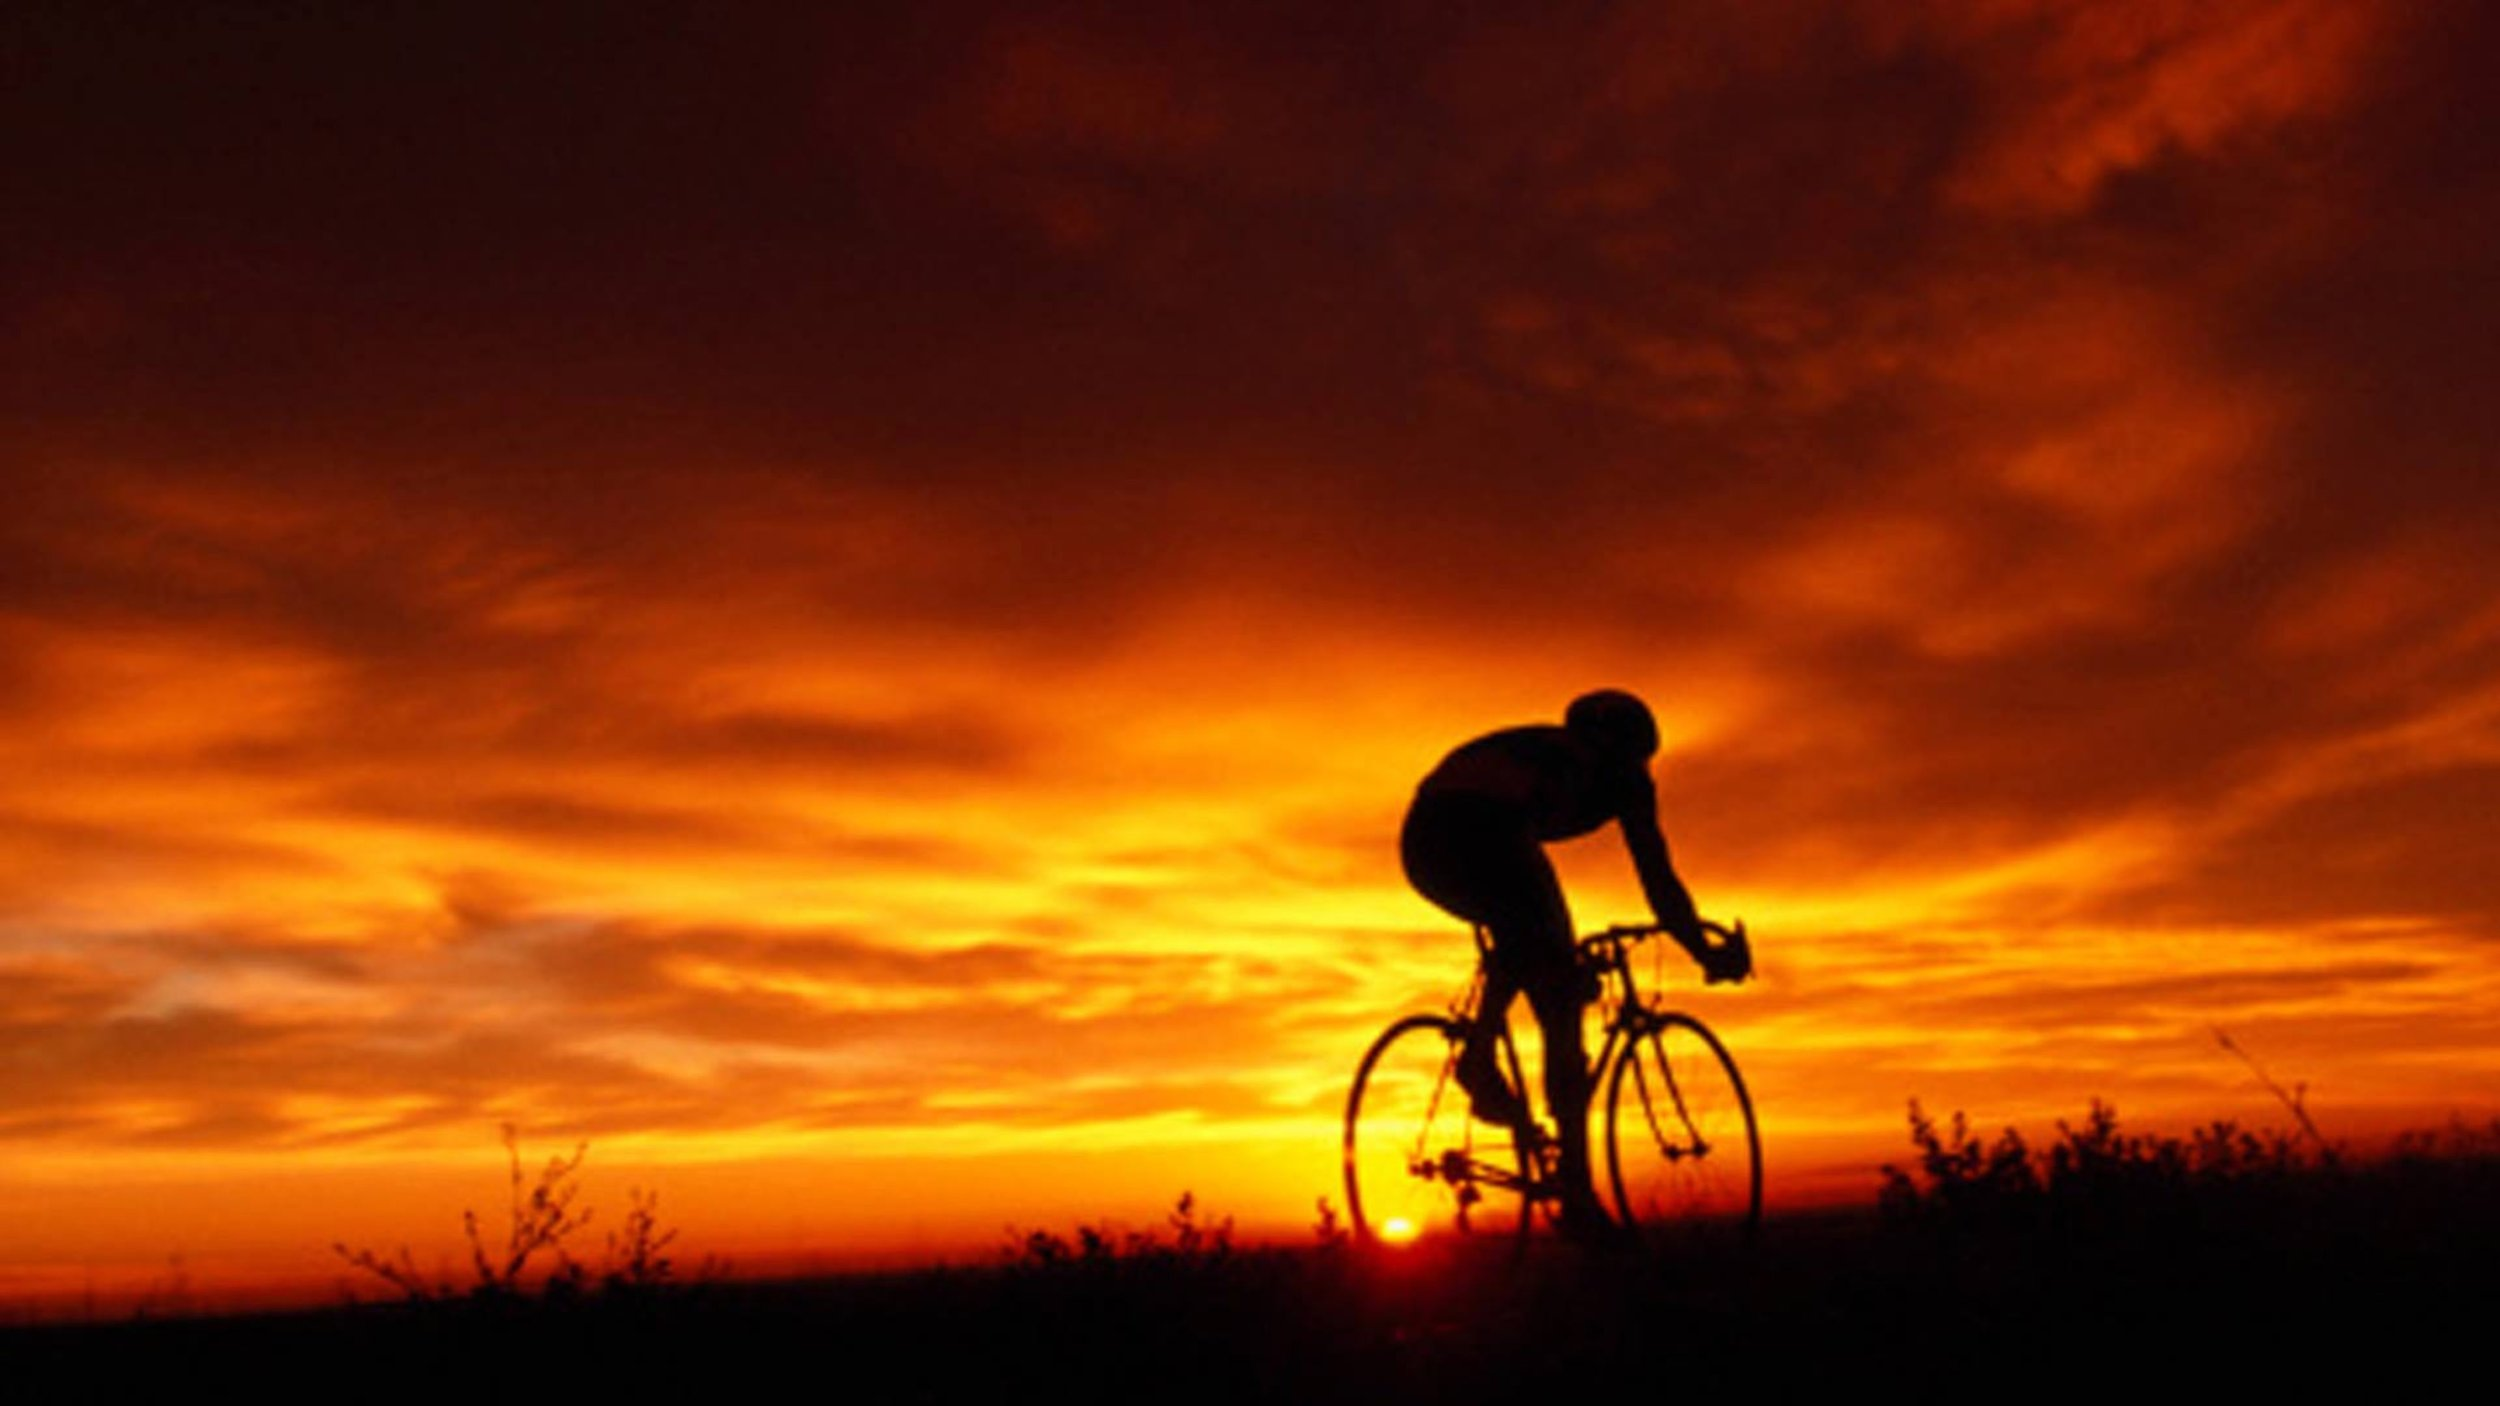 cycling-wallpaper-022.jpg